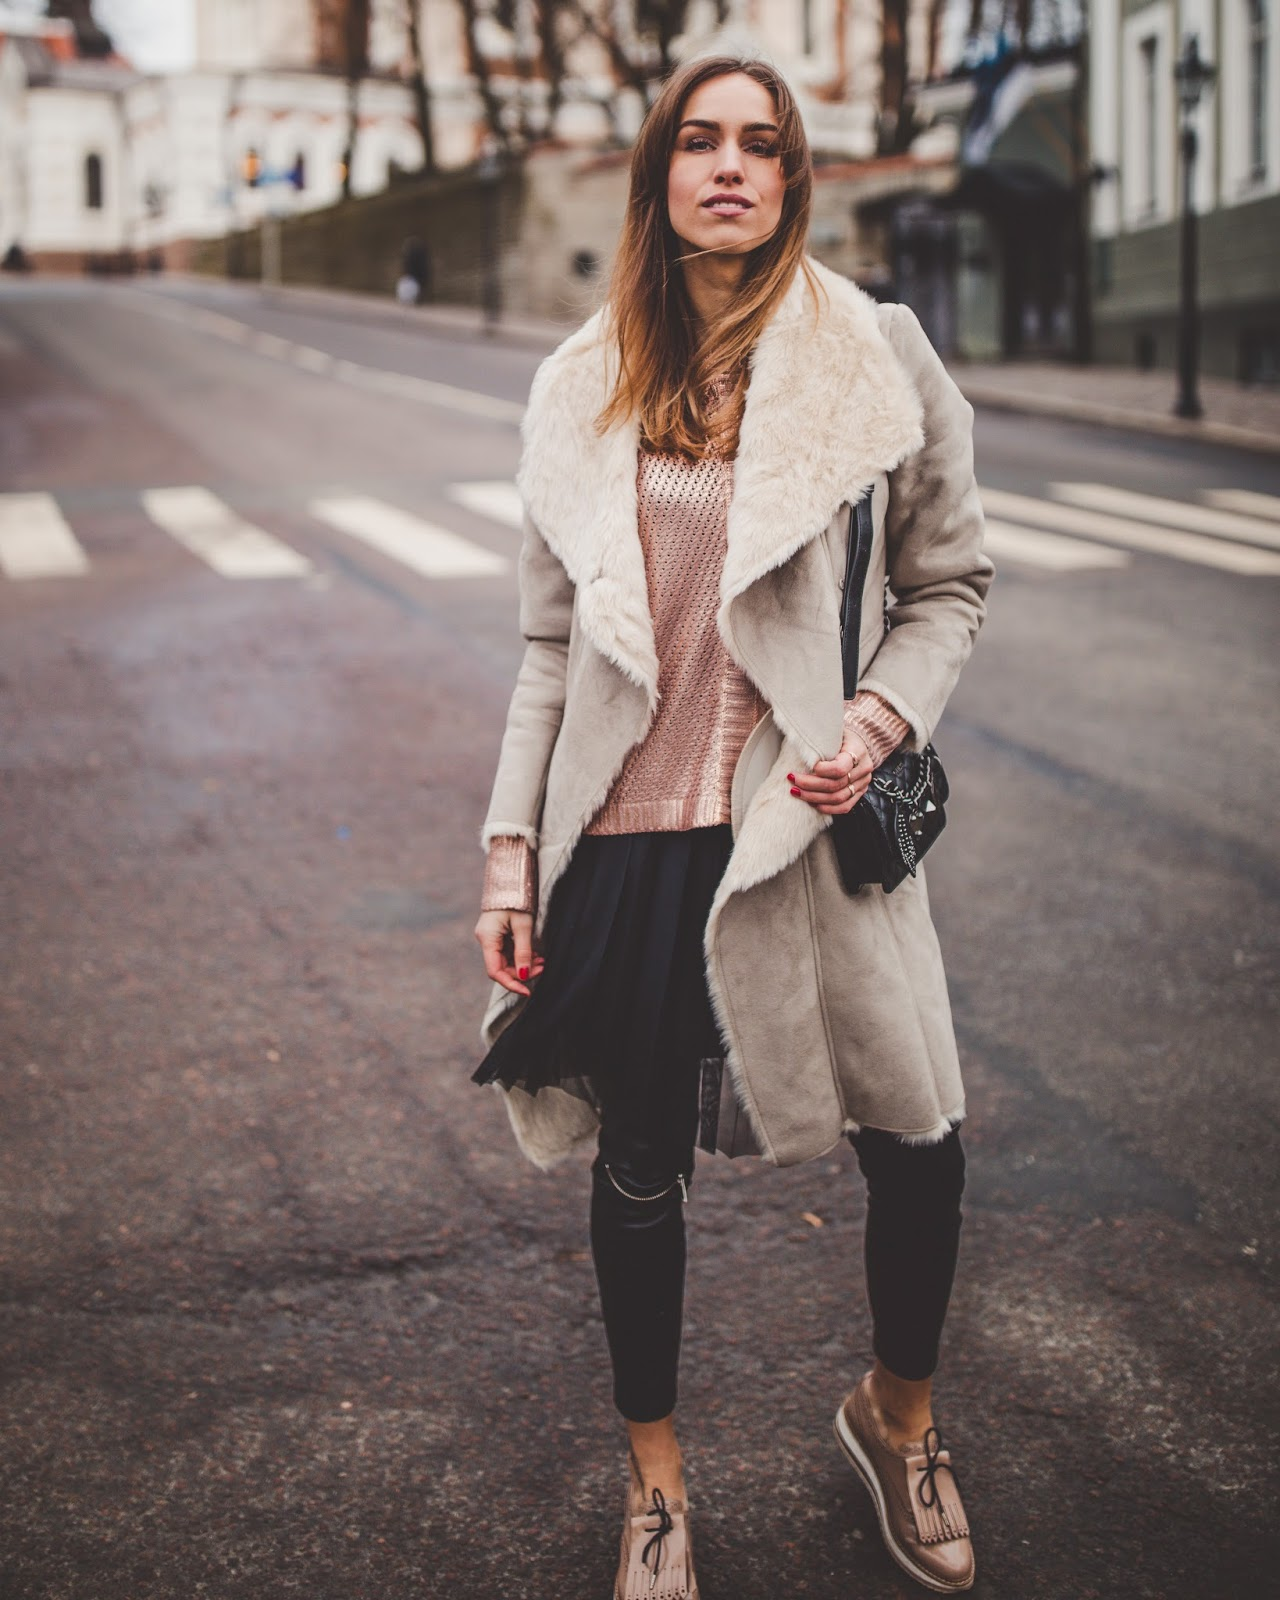 shearling coat dress over leather pants outfit fall